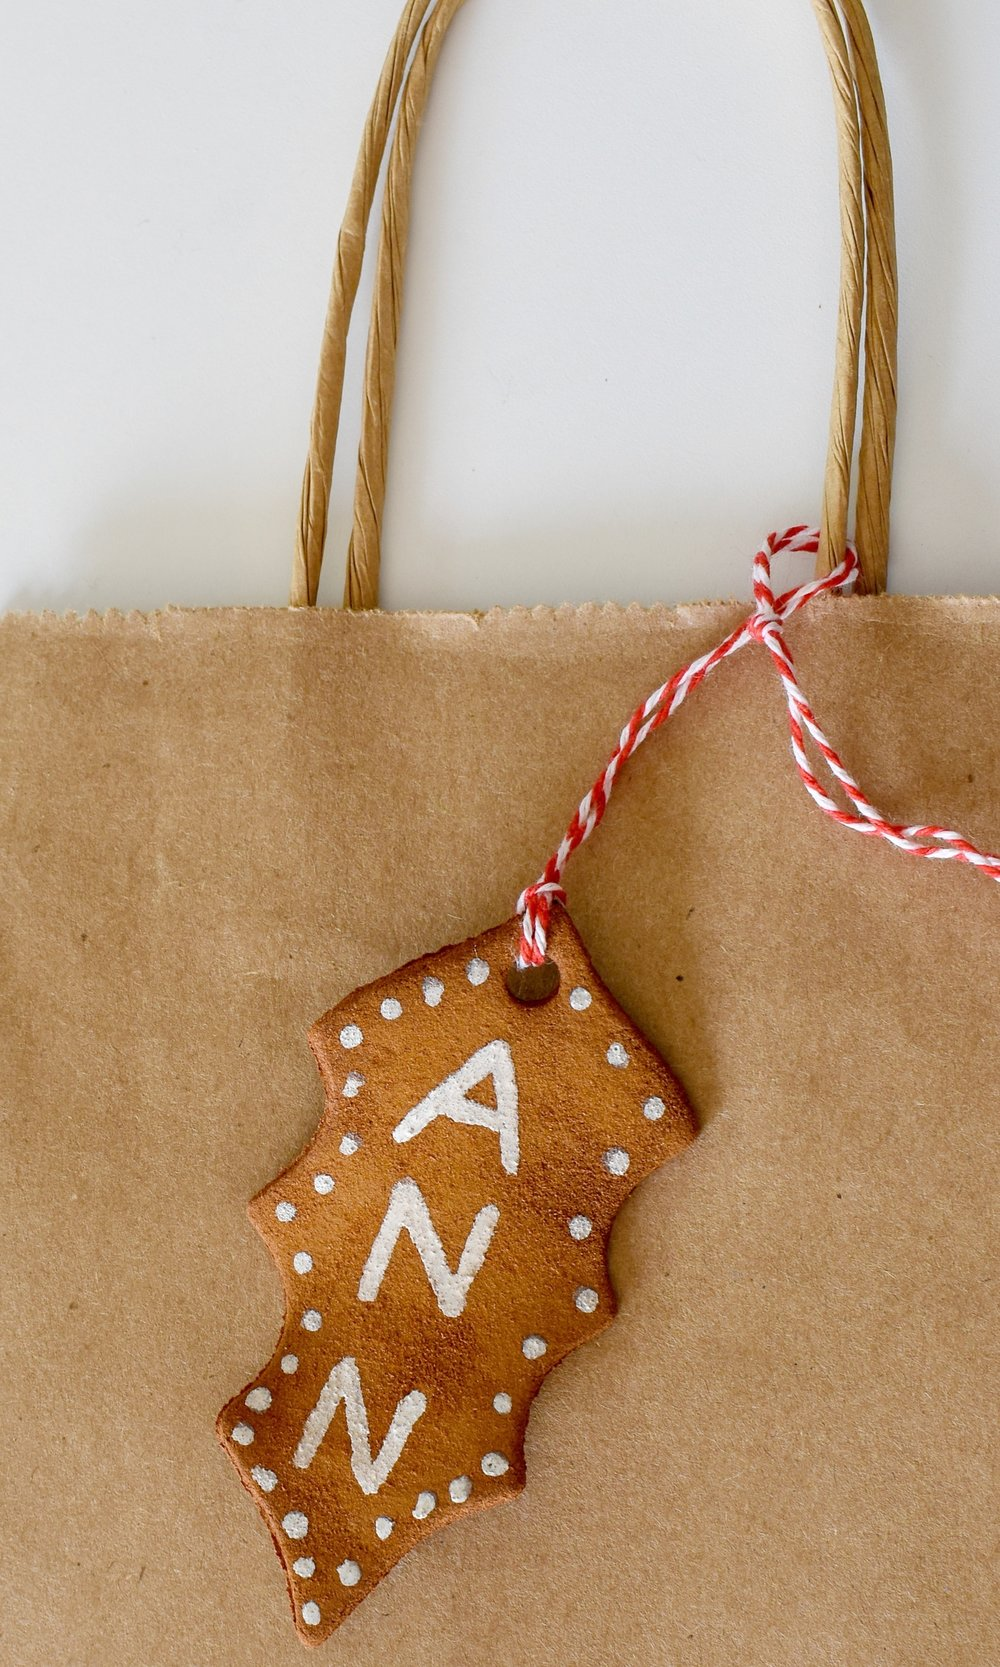 cinnamon ornaments as gift tags